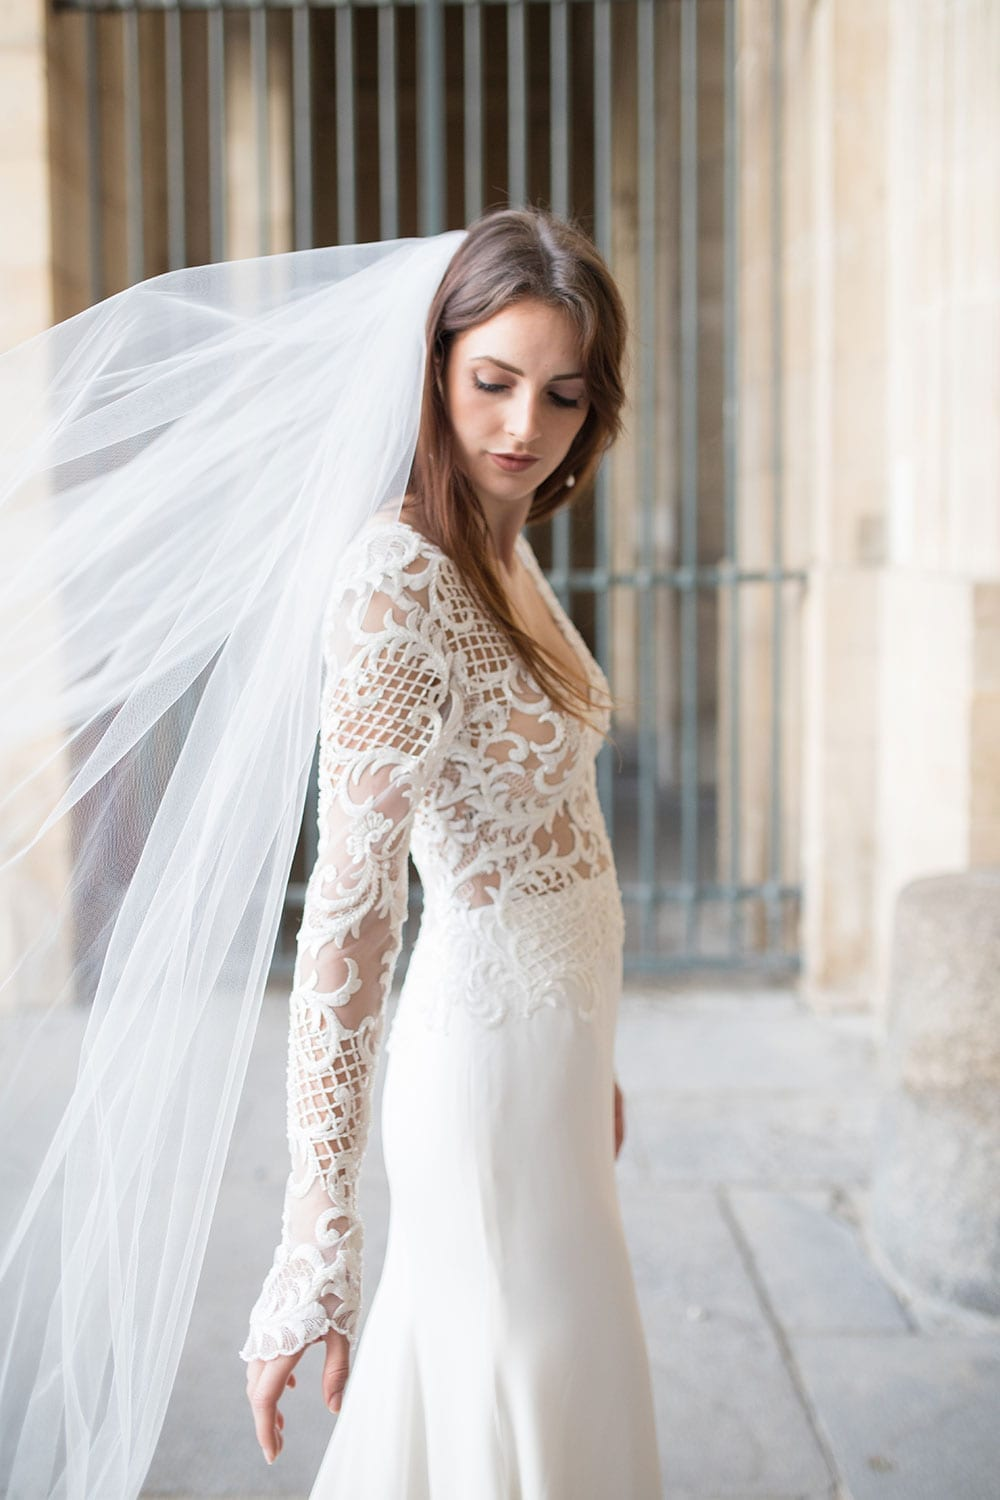 Model wearing Vinka Design Katrina Wedding Dress, a Stunning wedding dress sculptured with richly beaded lace . V neck gown with long fitted sleeves, a tailored skirt that fits softly over the hipline, and a beautiful train. Worn infront of ornate gate in Paris - side detail and custom veil.